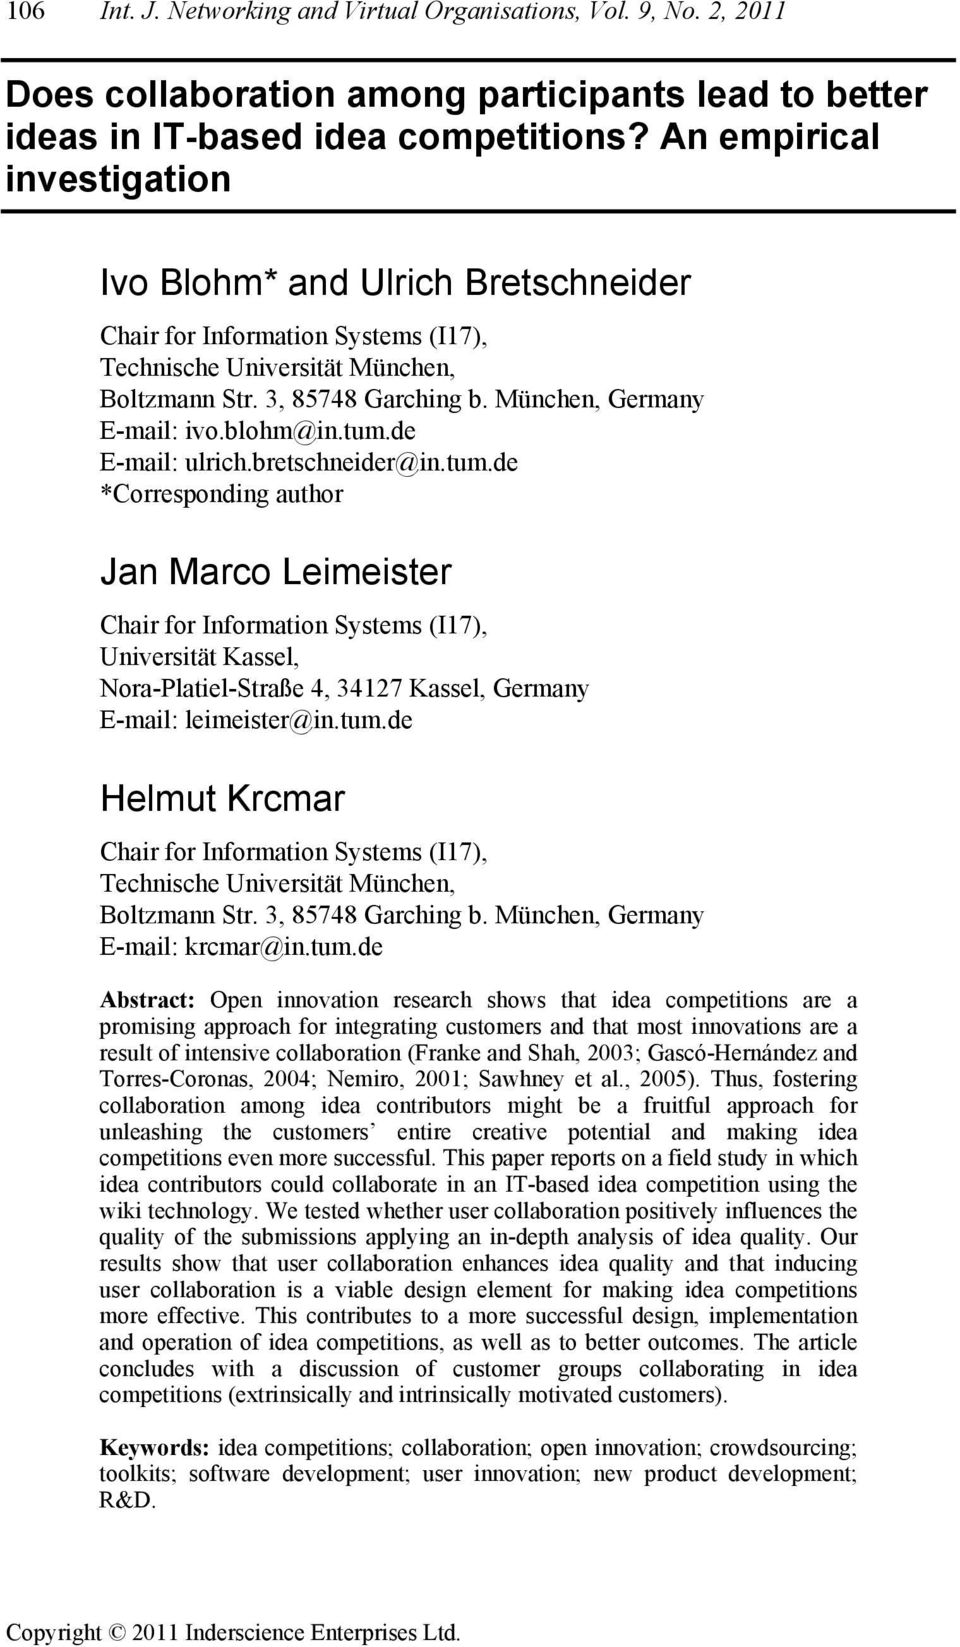 blohm@in.tum.de E-mail: ulrich.bretschneider@in.tum.de *Corresponding author Jan Marco Leimeister Chair for Information Systems (I17), Universität Kassel, Nora-Platiel-Straße 4, 34127 Kassel, Germany E-mail: leimeister@in.